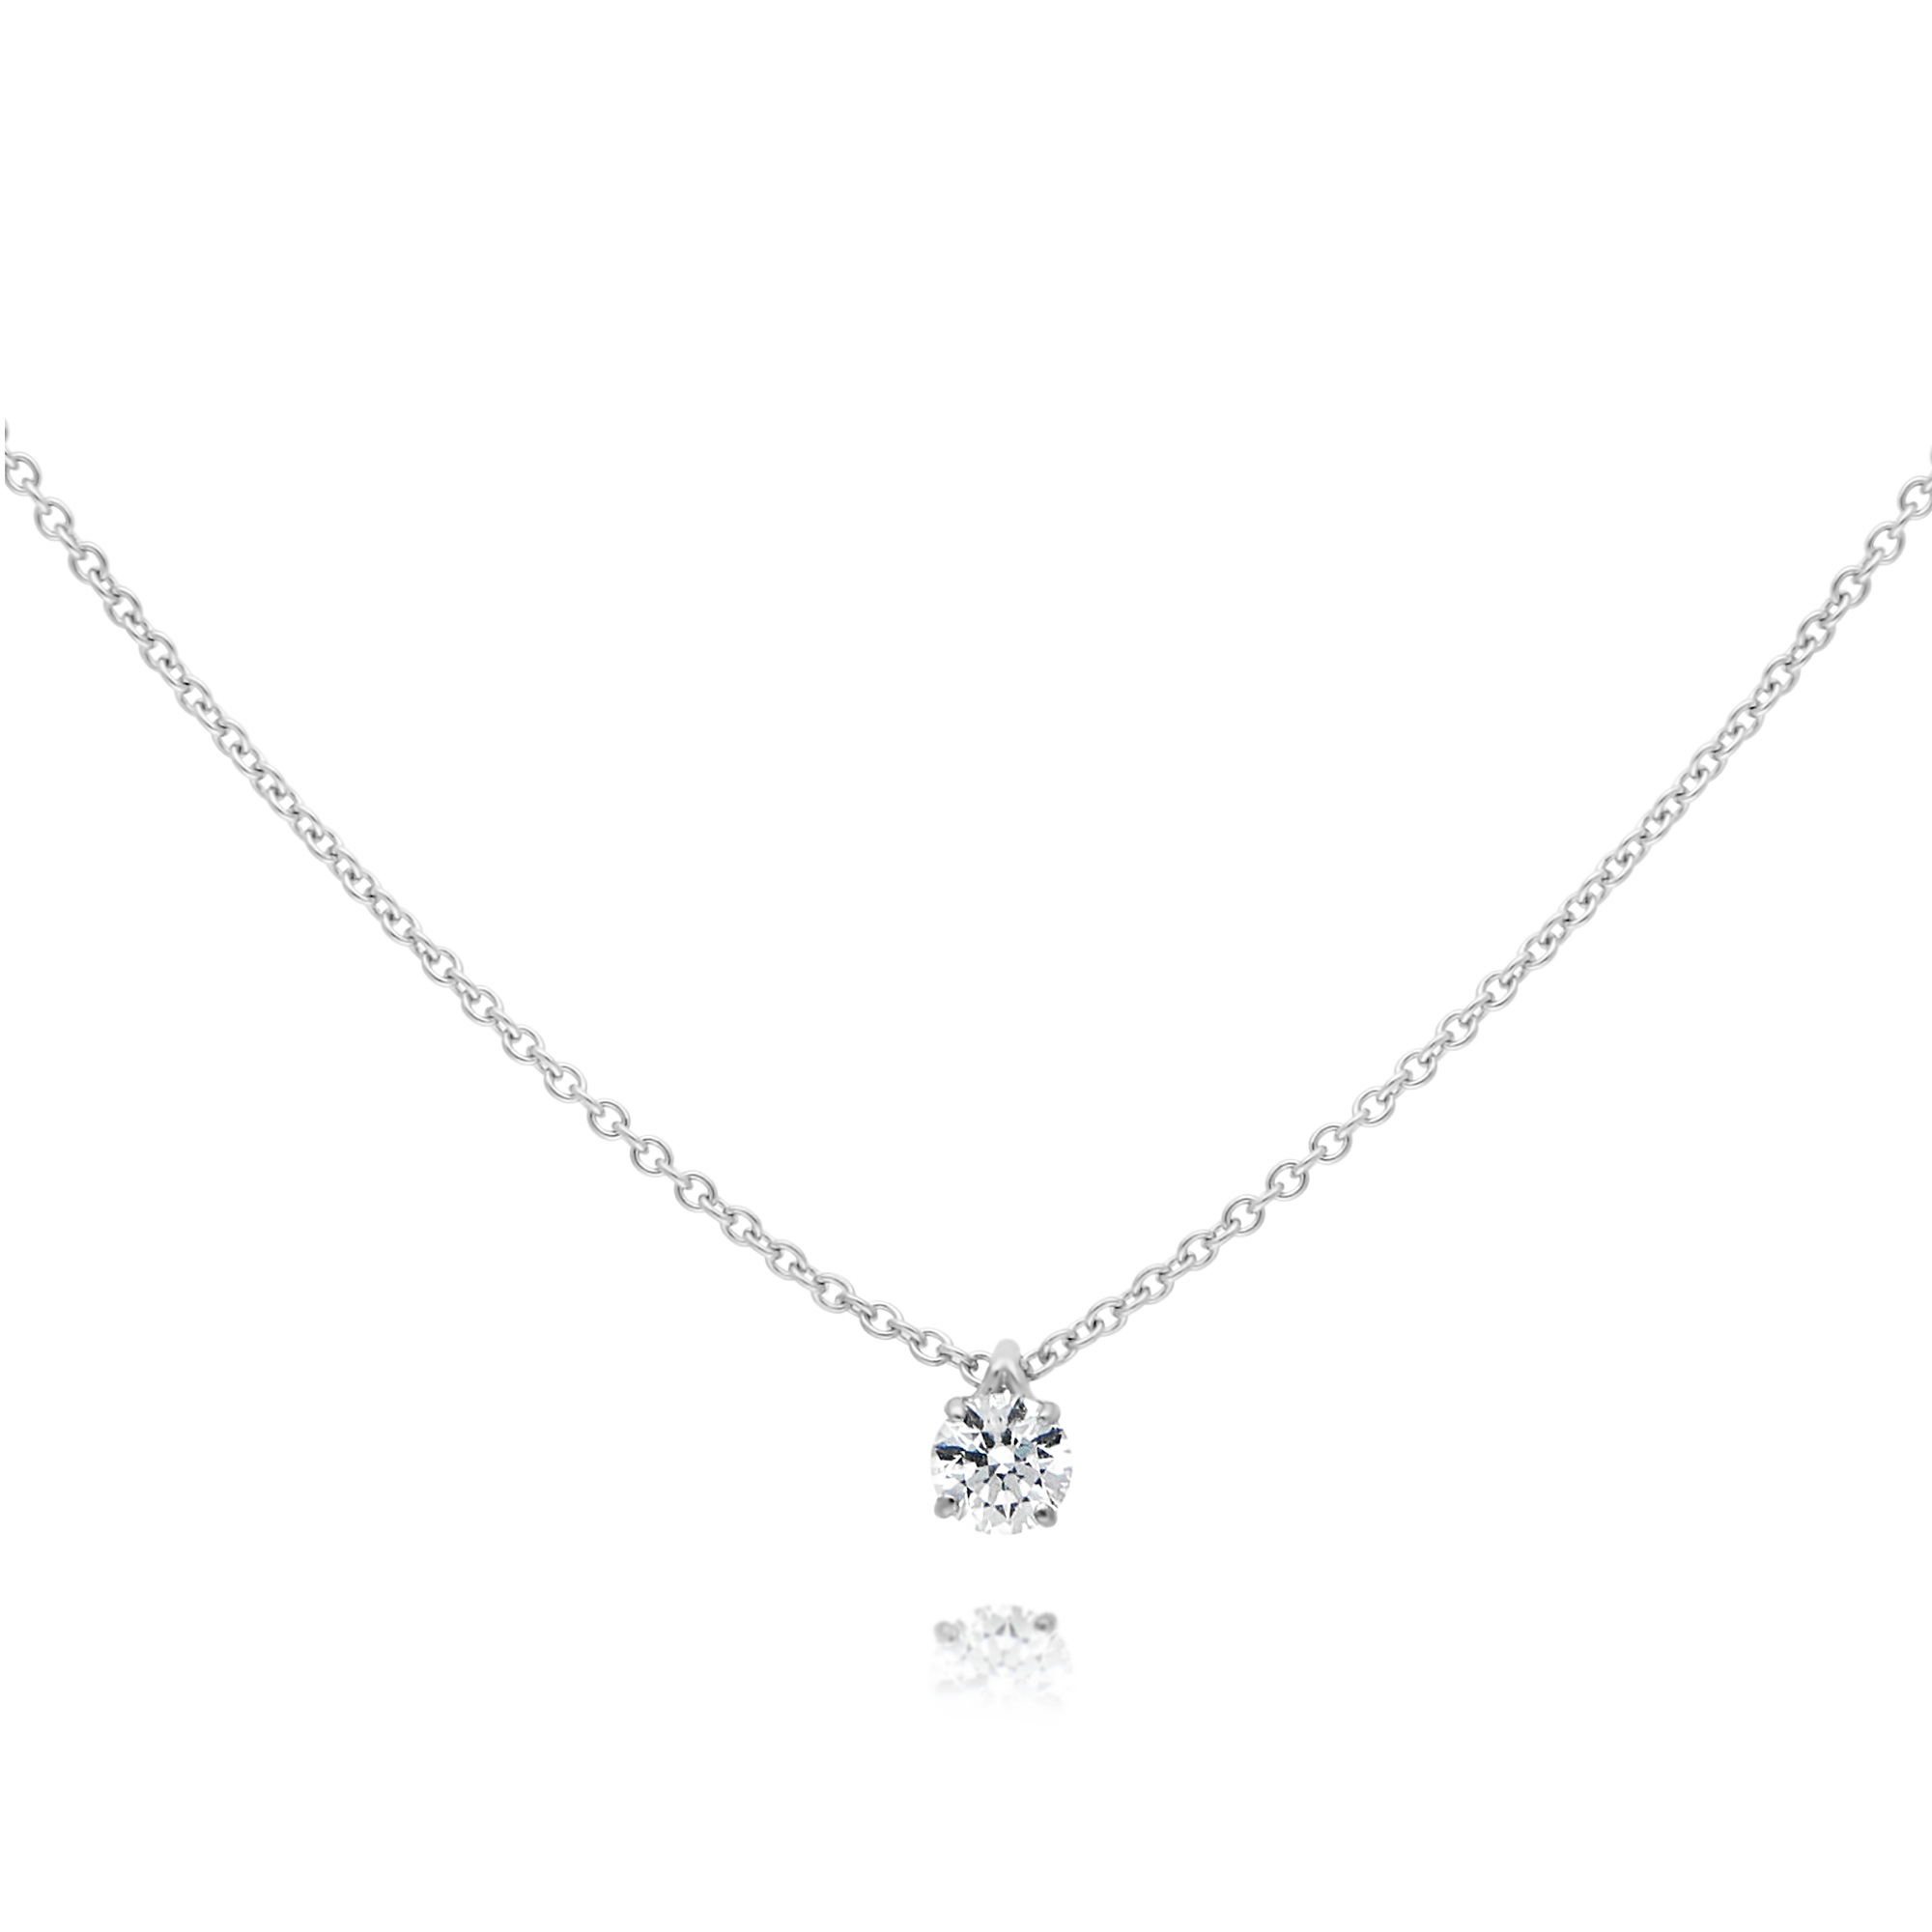 18ct White Gold Solitaire Diamond Pendant